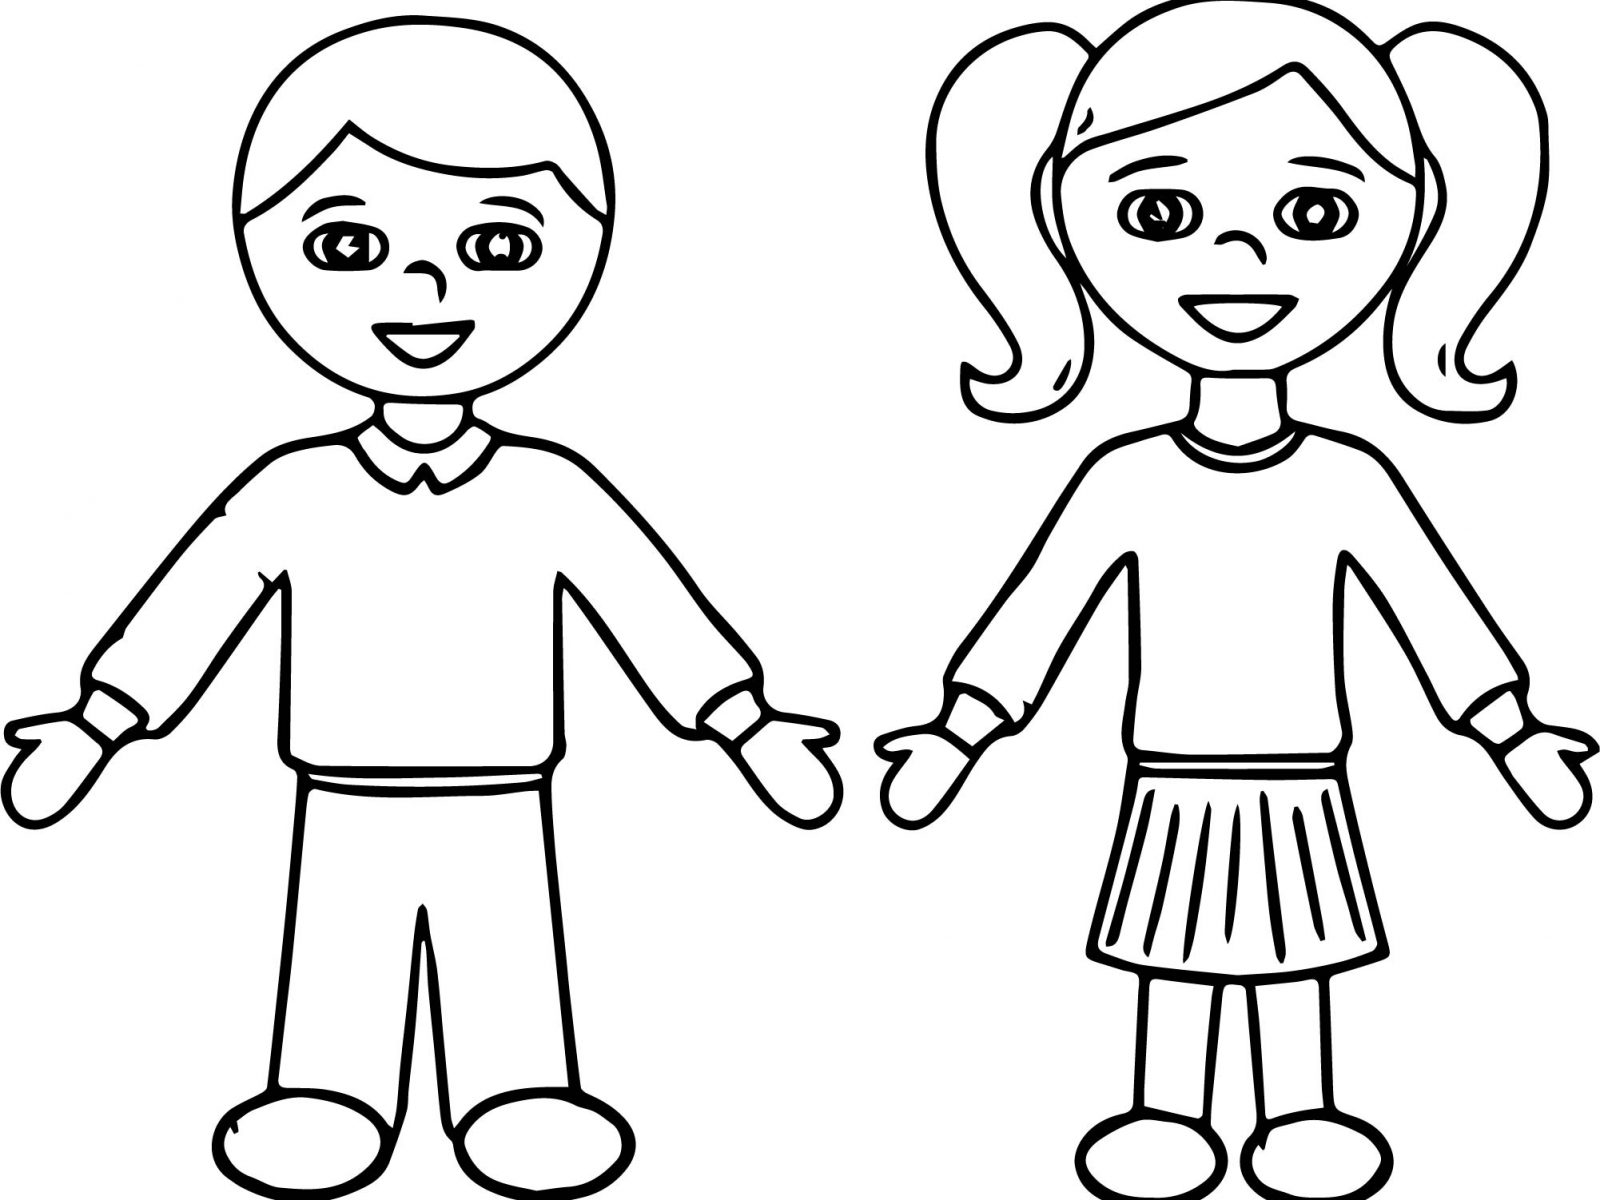 Student boy coloring pages ~ School Students Drawing at GetDrawings.com   Free for ...